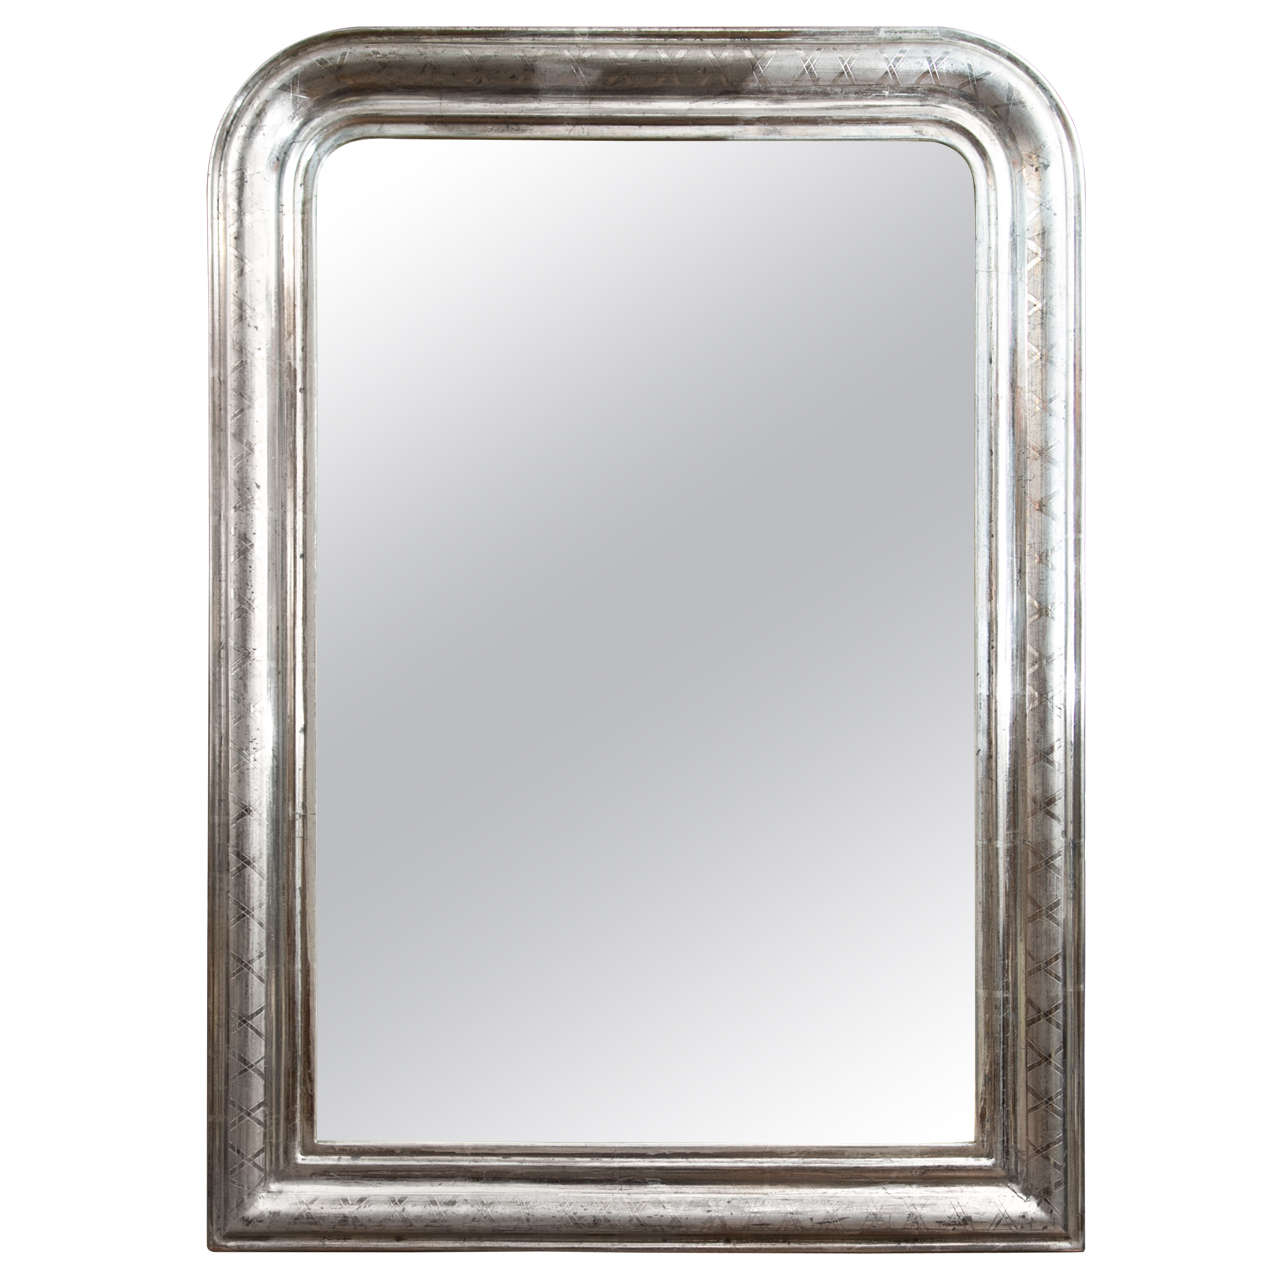 Louis philippe silver mirror for sale at 1stdibs for Silver mirrors for sale